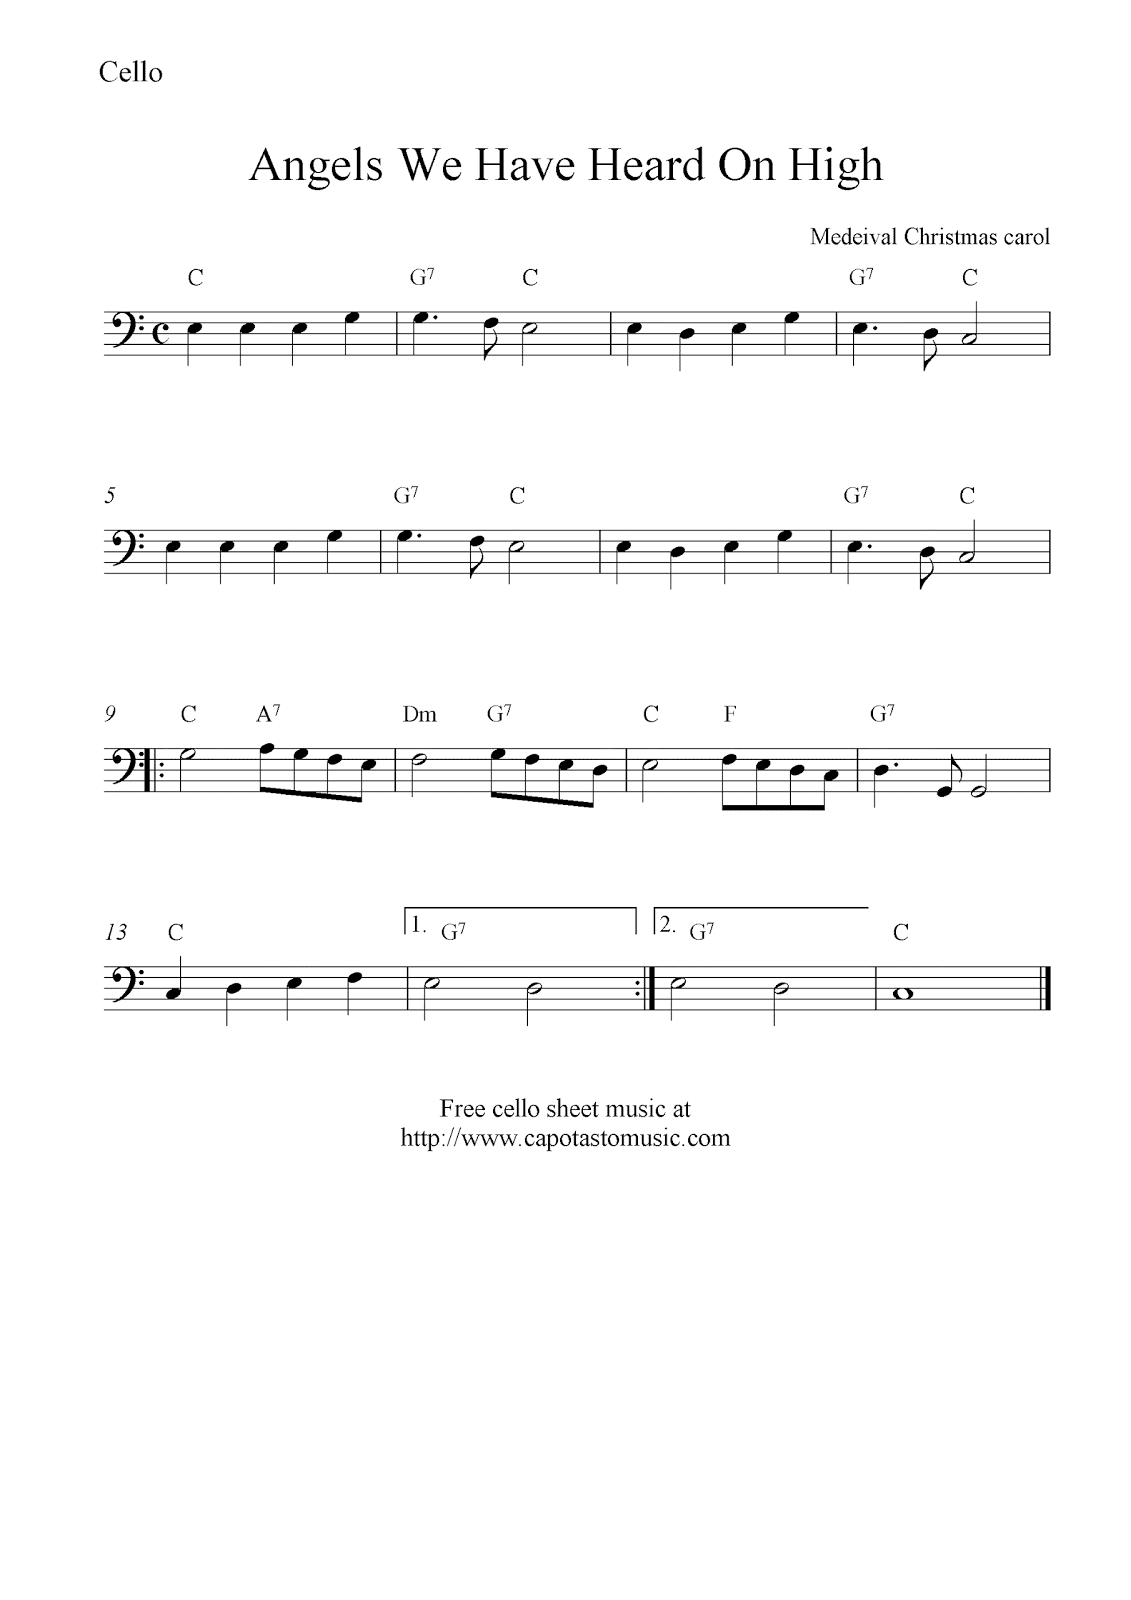 Angels We Have Heard On High, free Christmas cello sheet music notes